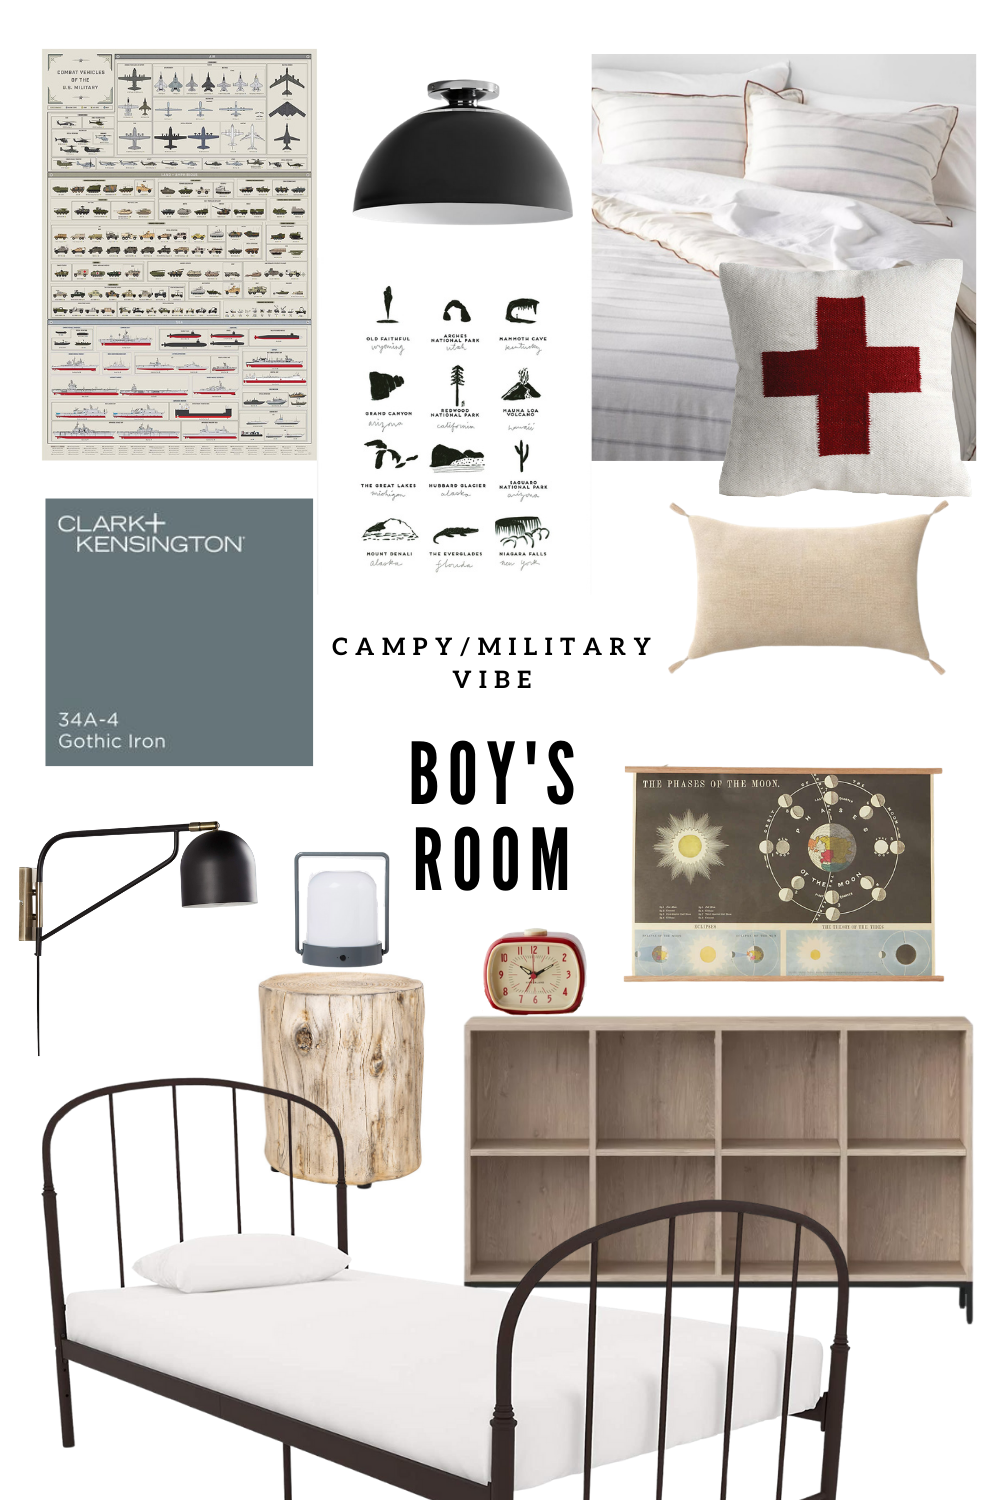 Dax's Camp-y, Military-Inspired Big Boy Room Mood Board